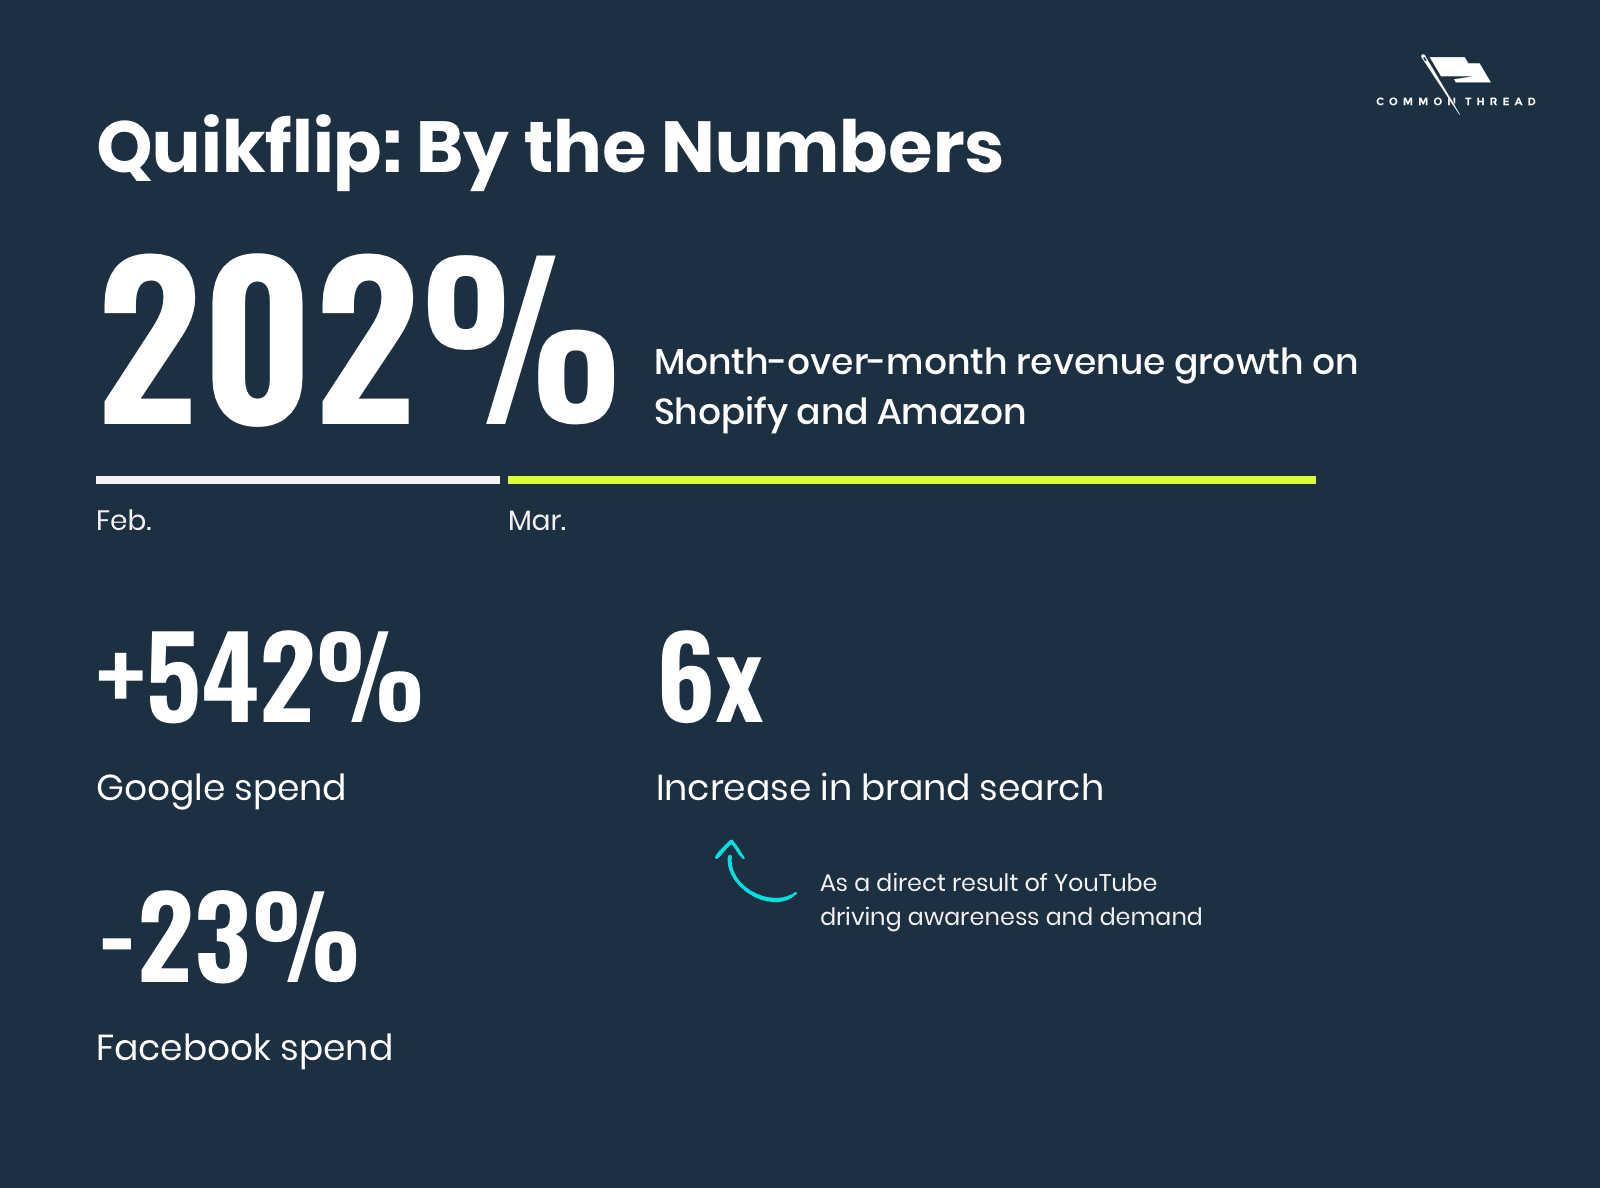 Quikflip: By the Numbers - 202% month-over-month revenue growth on Shopify and Amazon